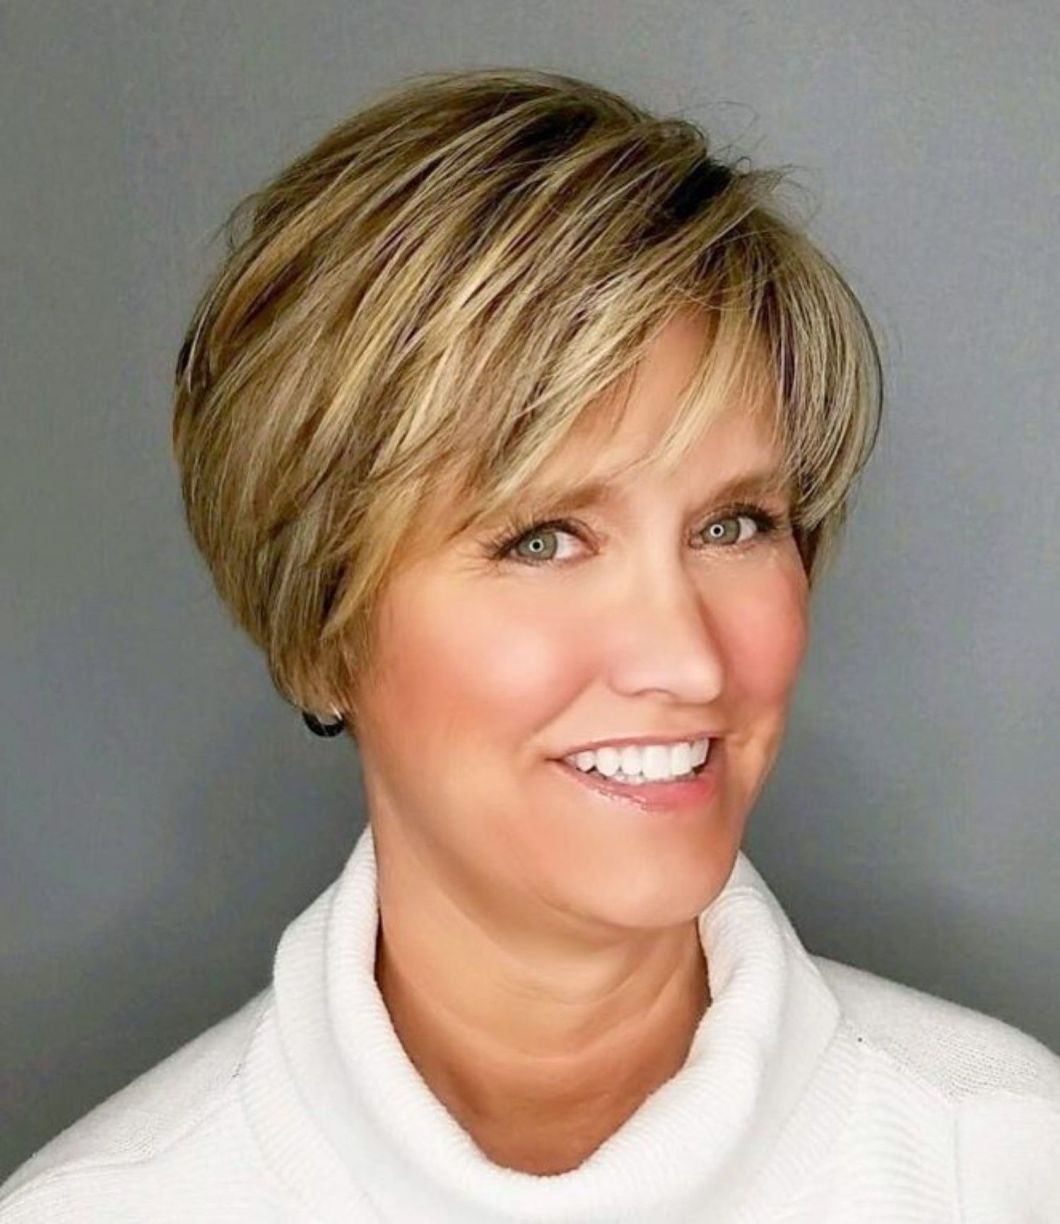 90 Classy And Simple Short Hairstyles For Women Over 50 In 2020 Short Hairstyles For Women Short Hair Styles Thick Hair Styles